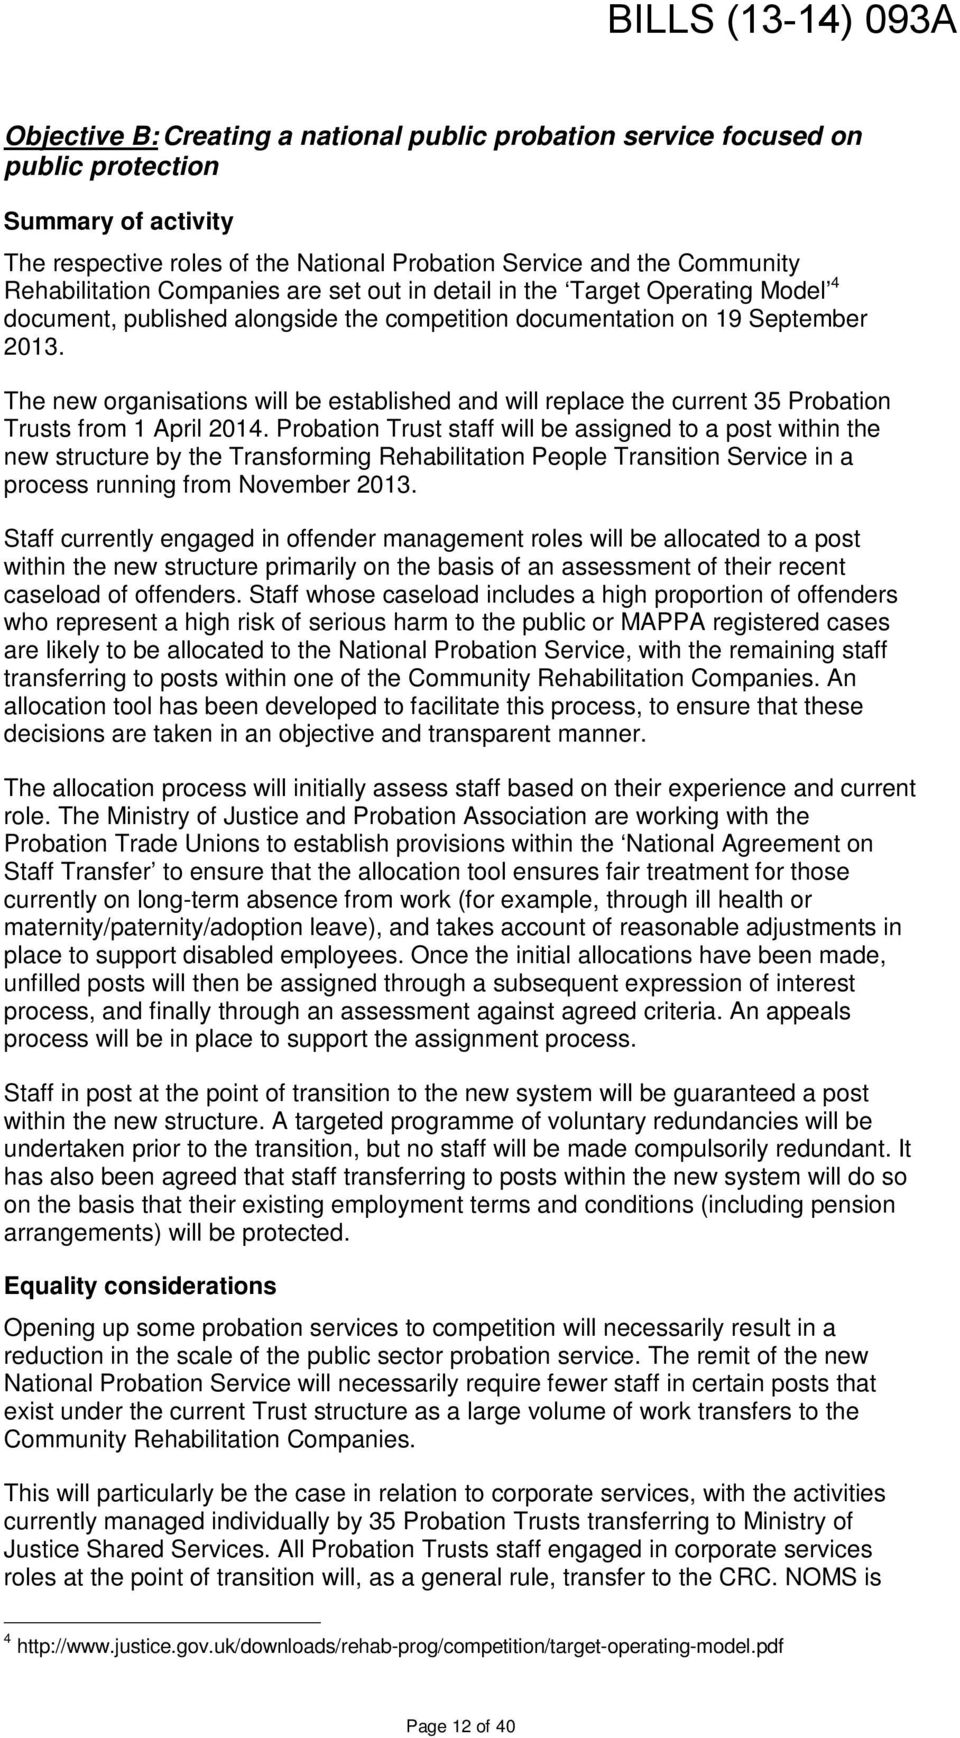 The new organisations will be established and will replace the current 35 Probation Trusts from 1 April 2014.